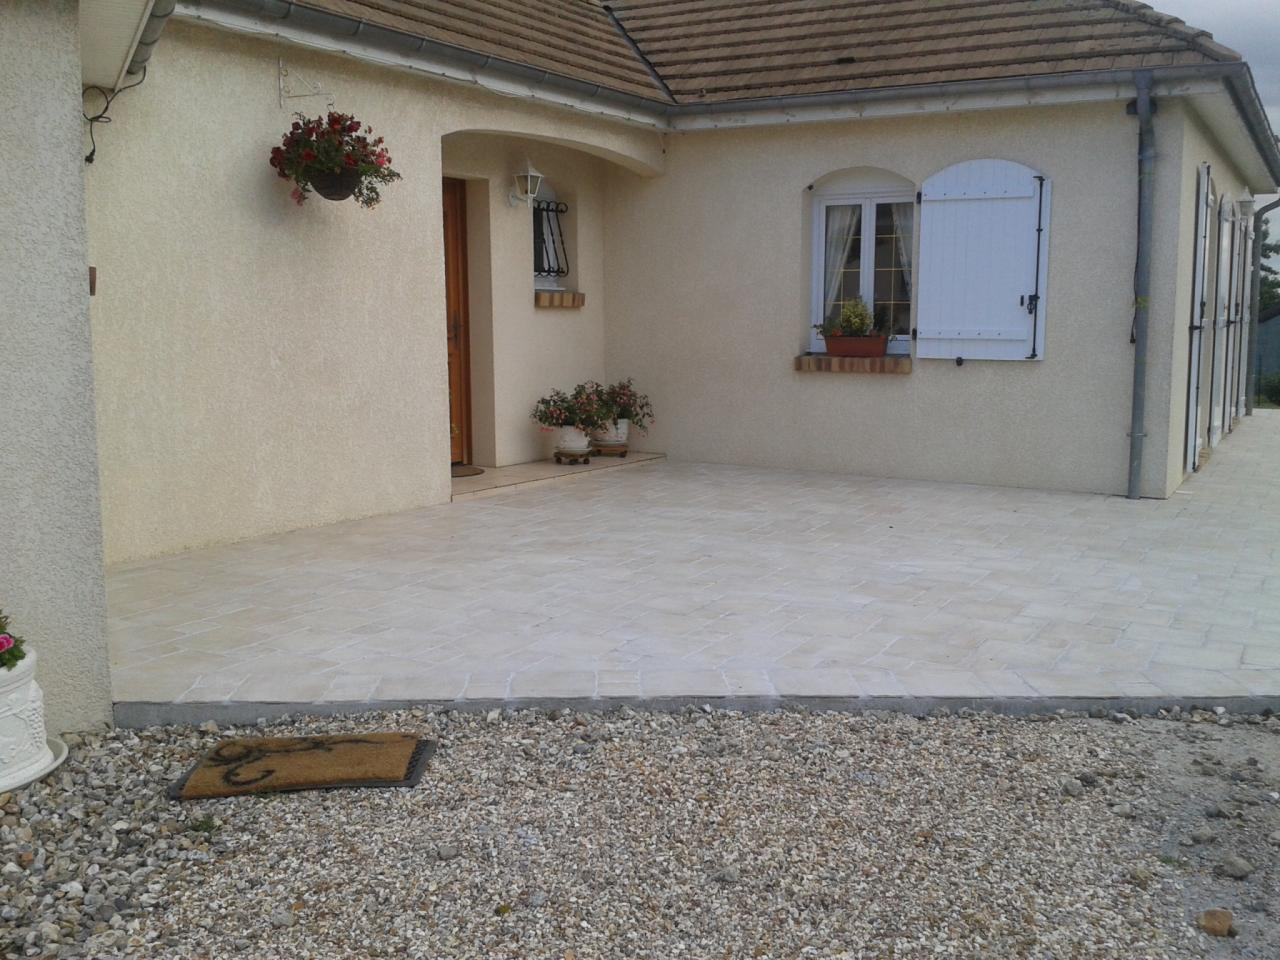 Carrelage ext rieur terrasse all e et trottoir for Terrasse exterieur carrelage